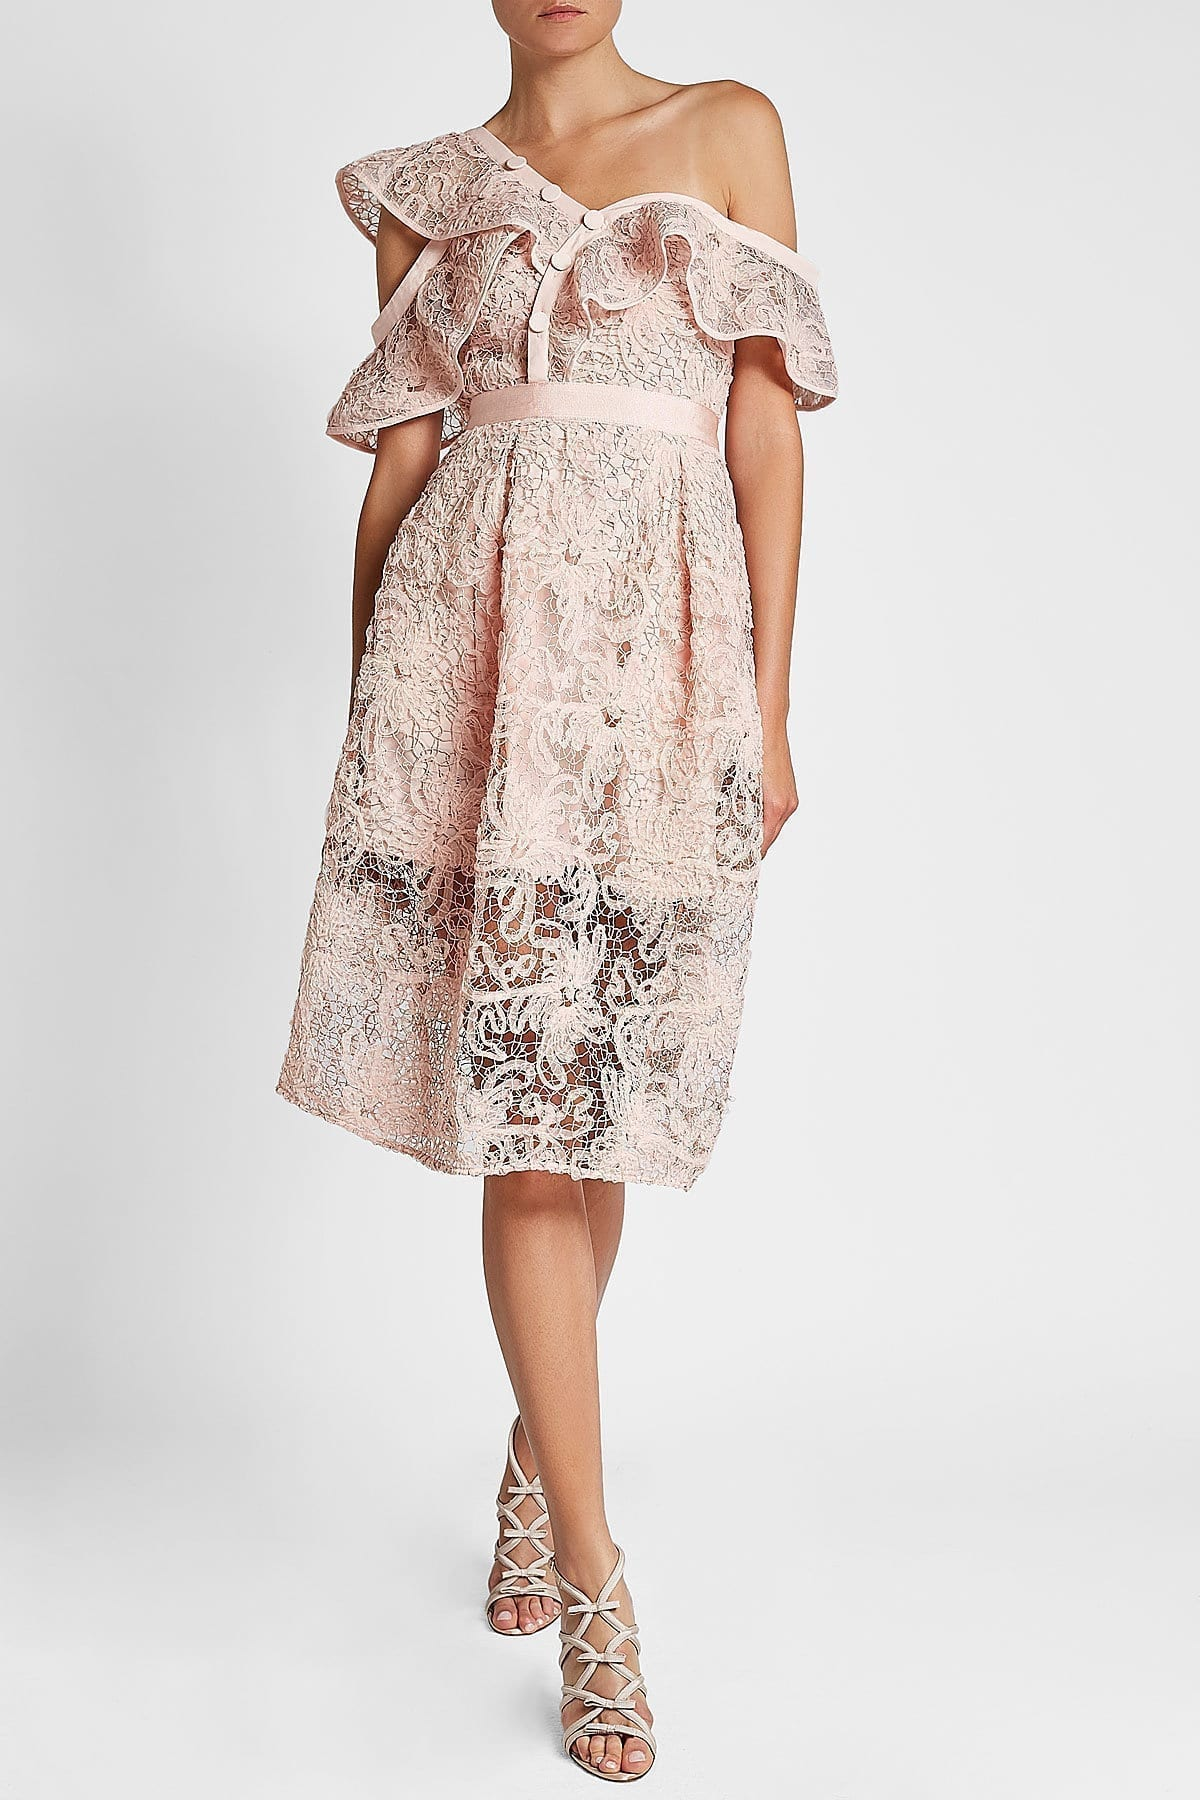 SELF-PORTRAIT Asymmetric Floral Lace Pink Dress